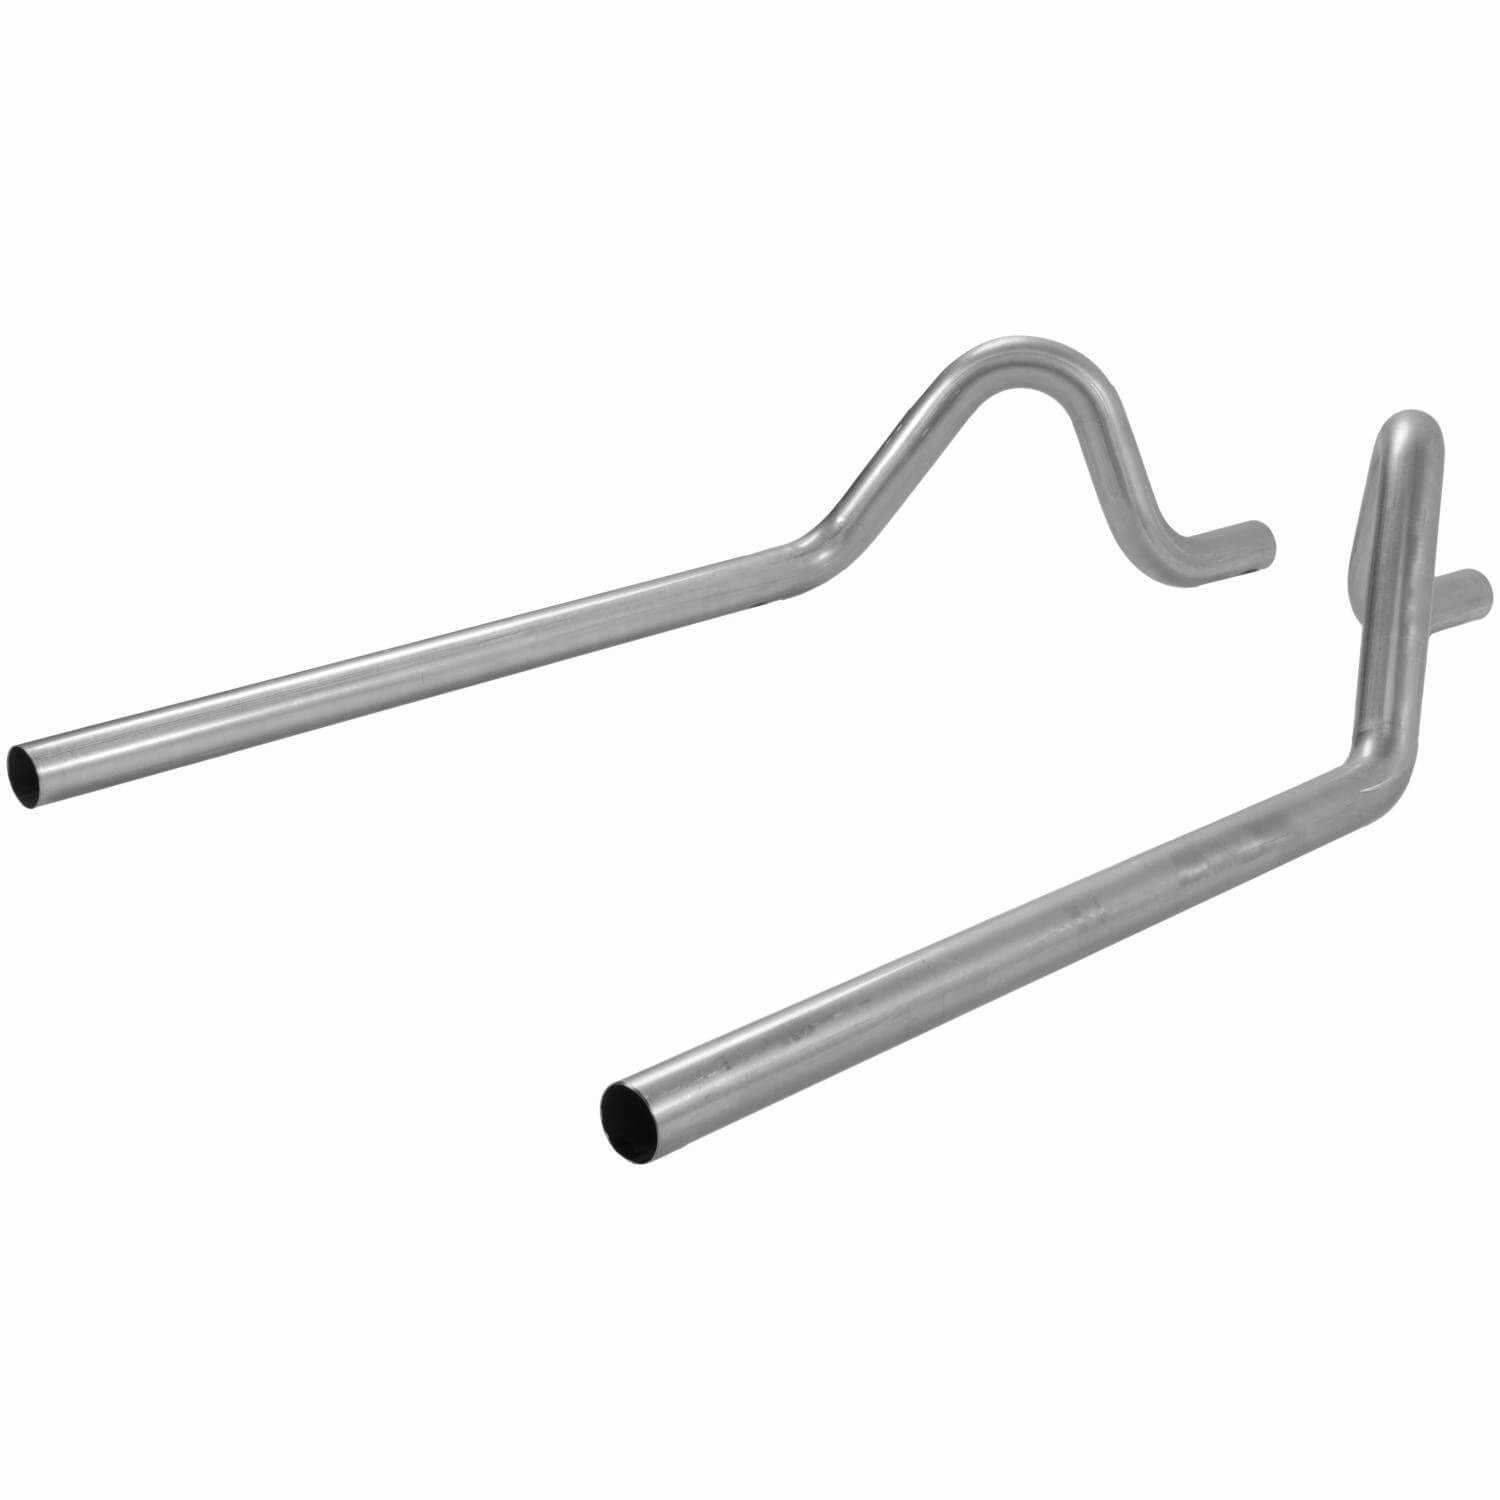 Flowmaster Tailpipe Set 15816